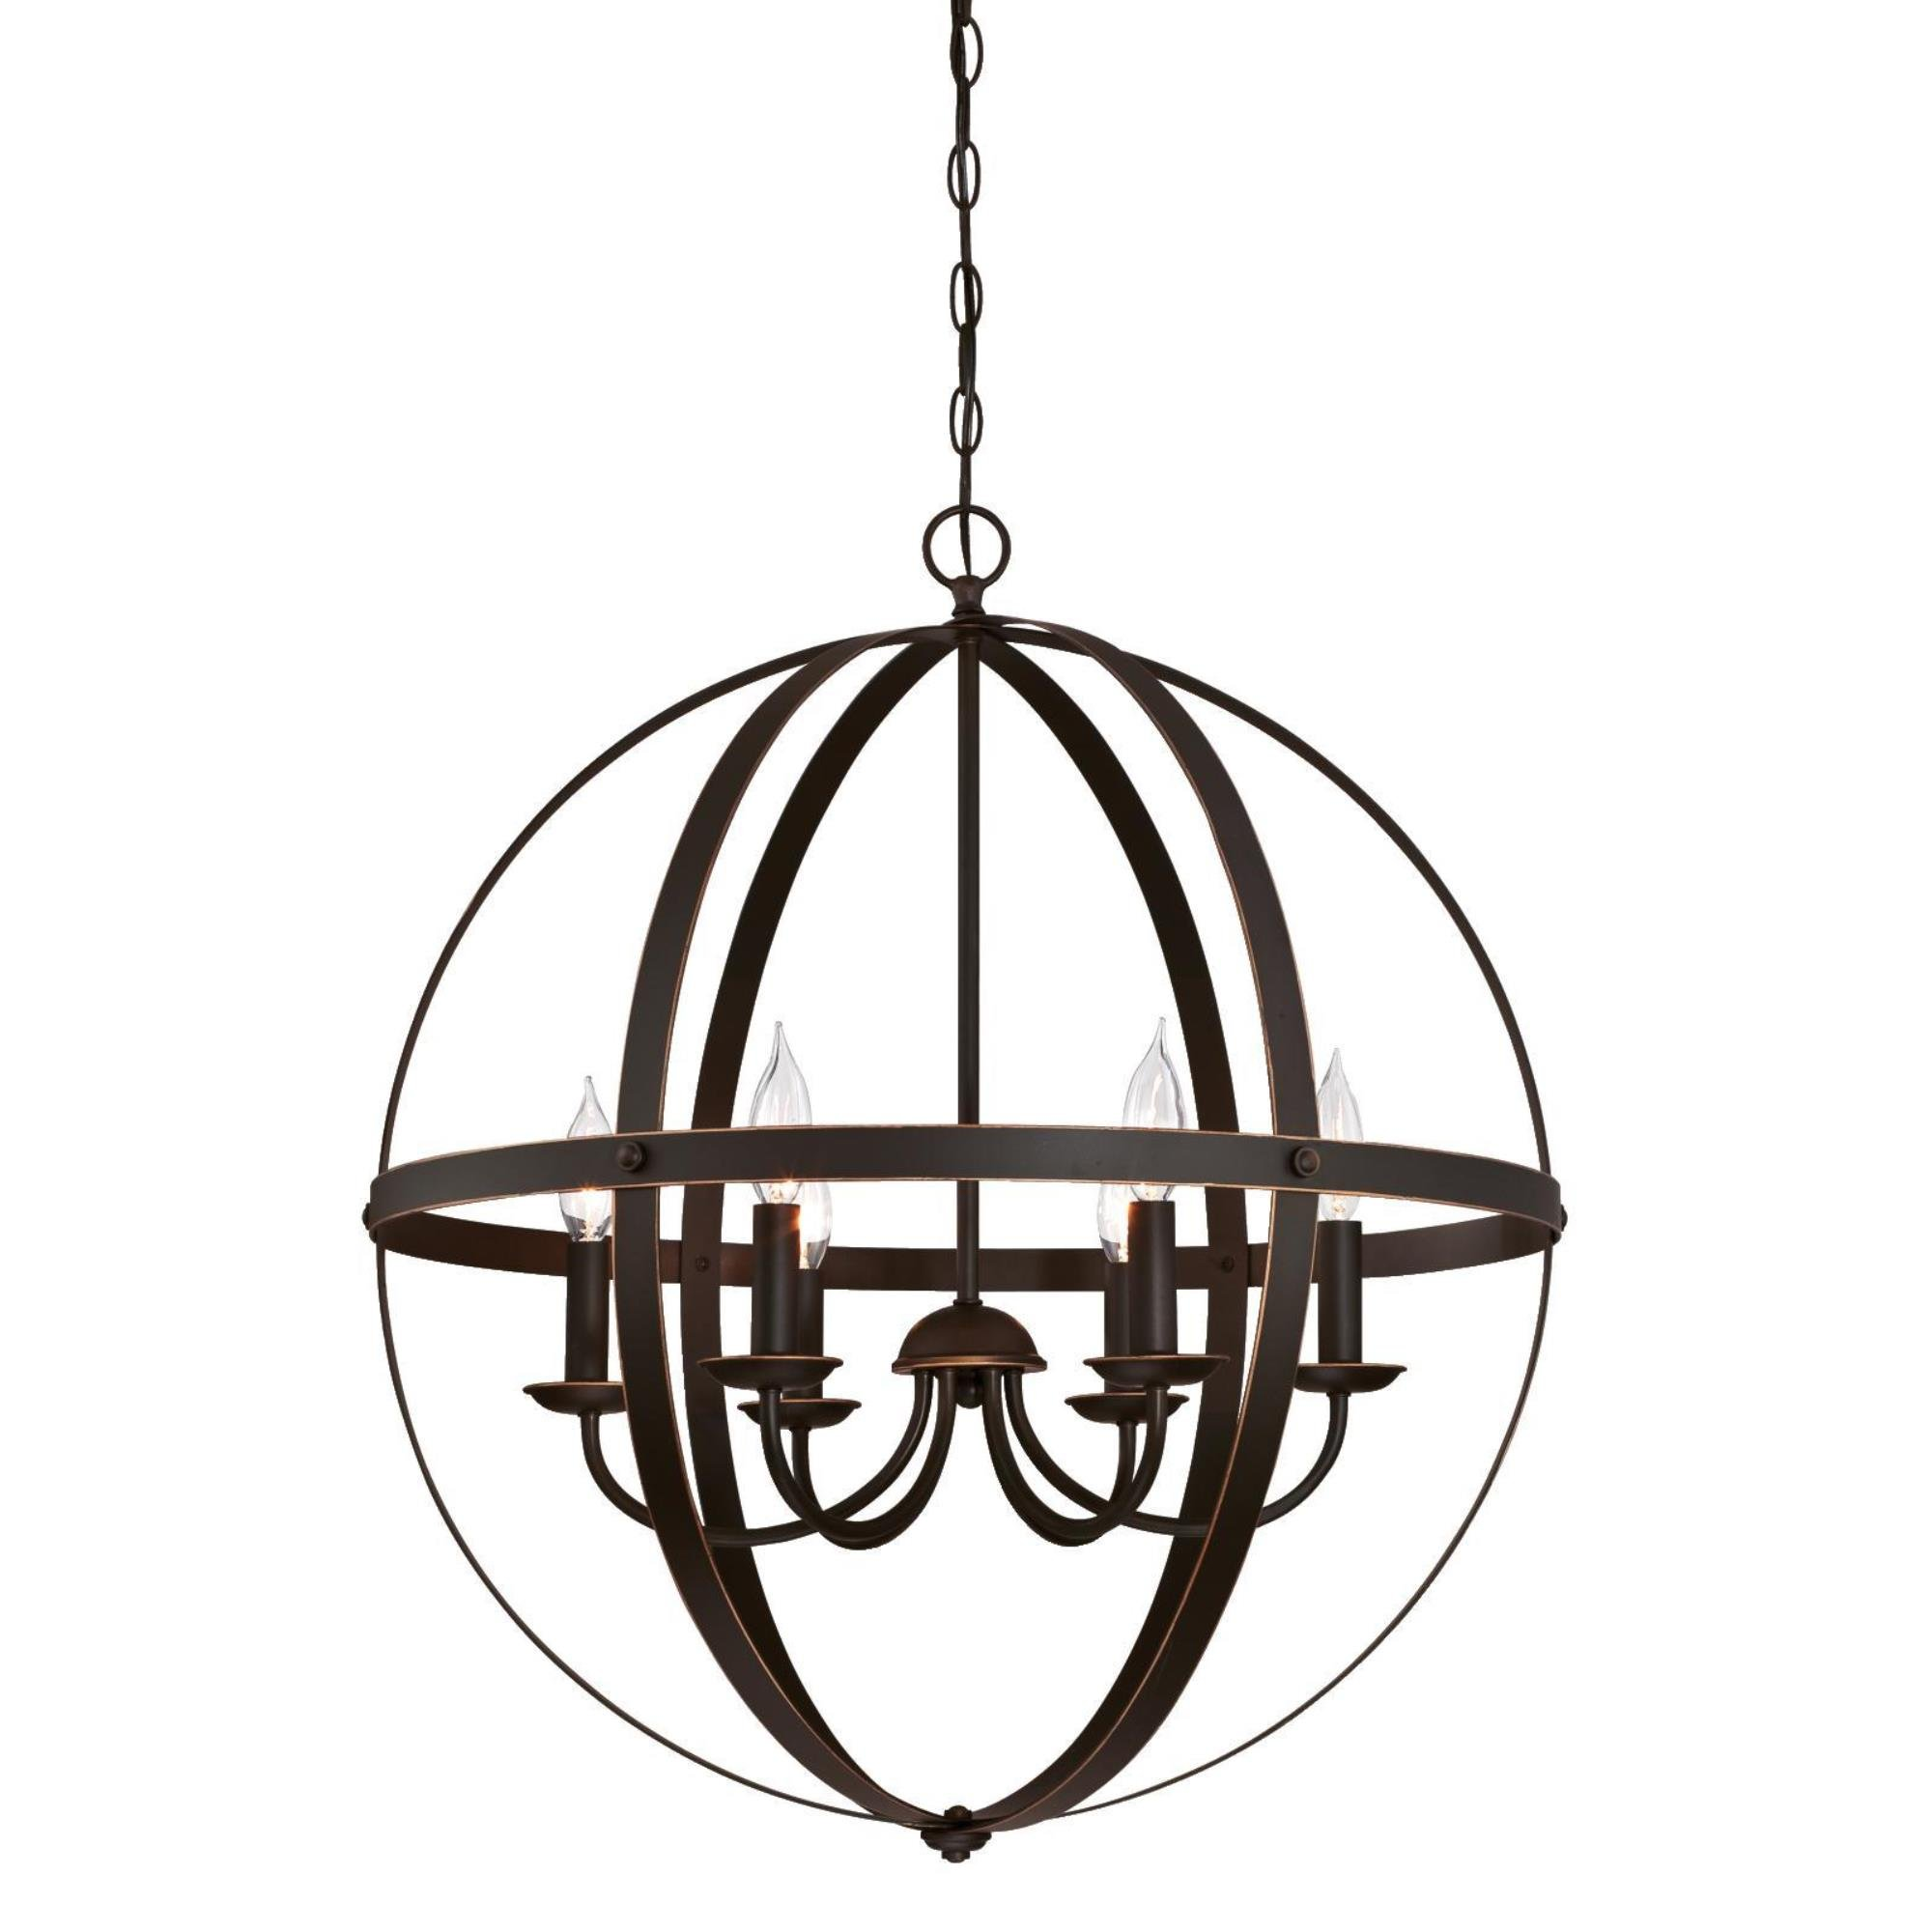 Westinghouse 6328200 Stella Mira Six-Light Indoor Chandelier Finish with Highlights, Oil Rubbed Bronze